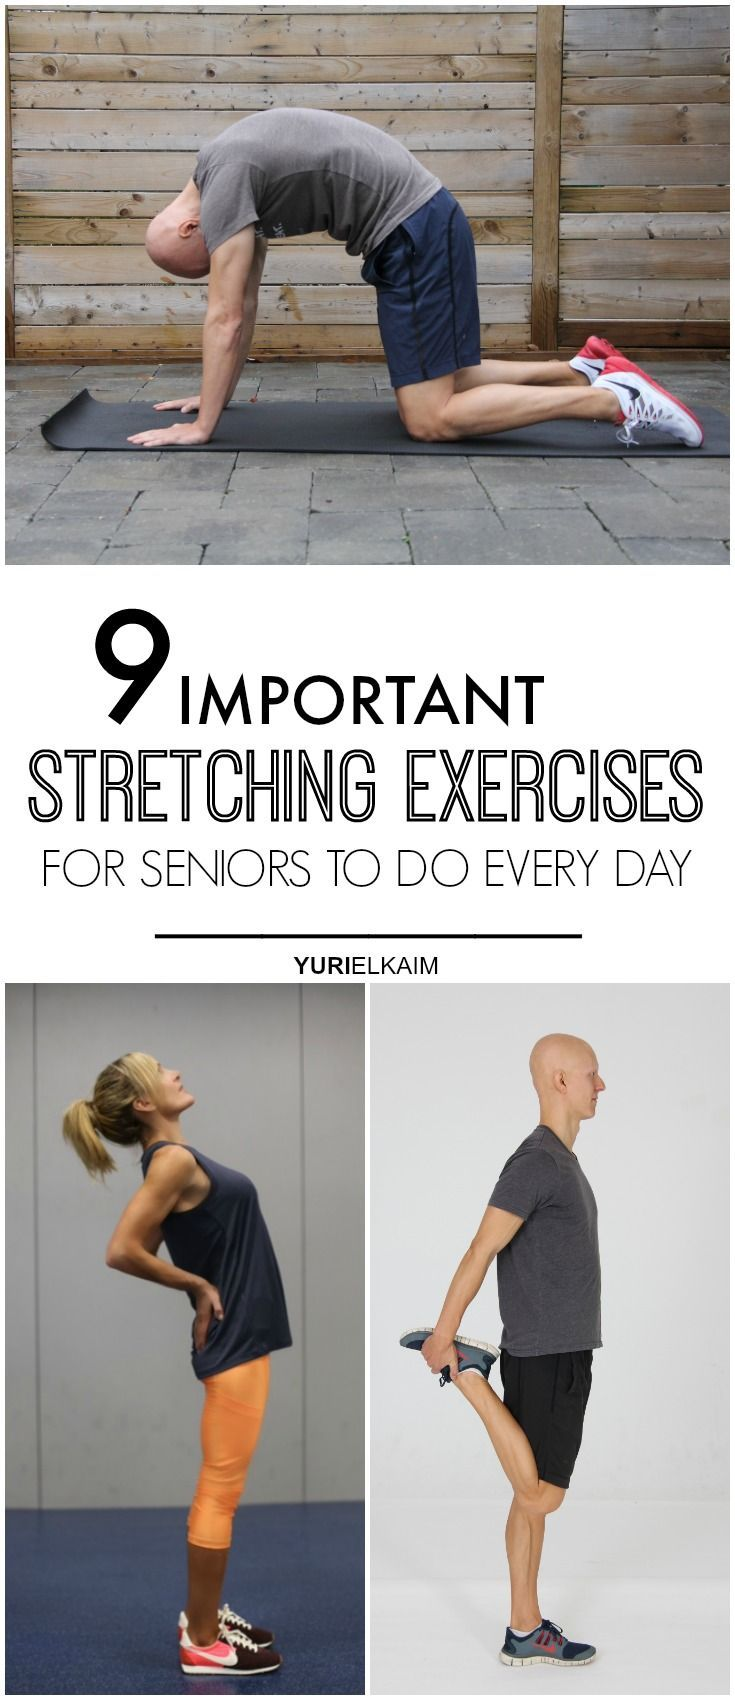 9 Important Stretching Exercises for Seniors to Do Every Day - Pinterest